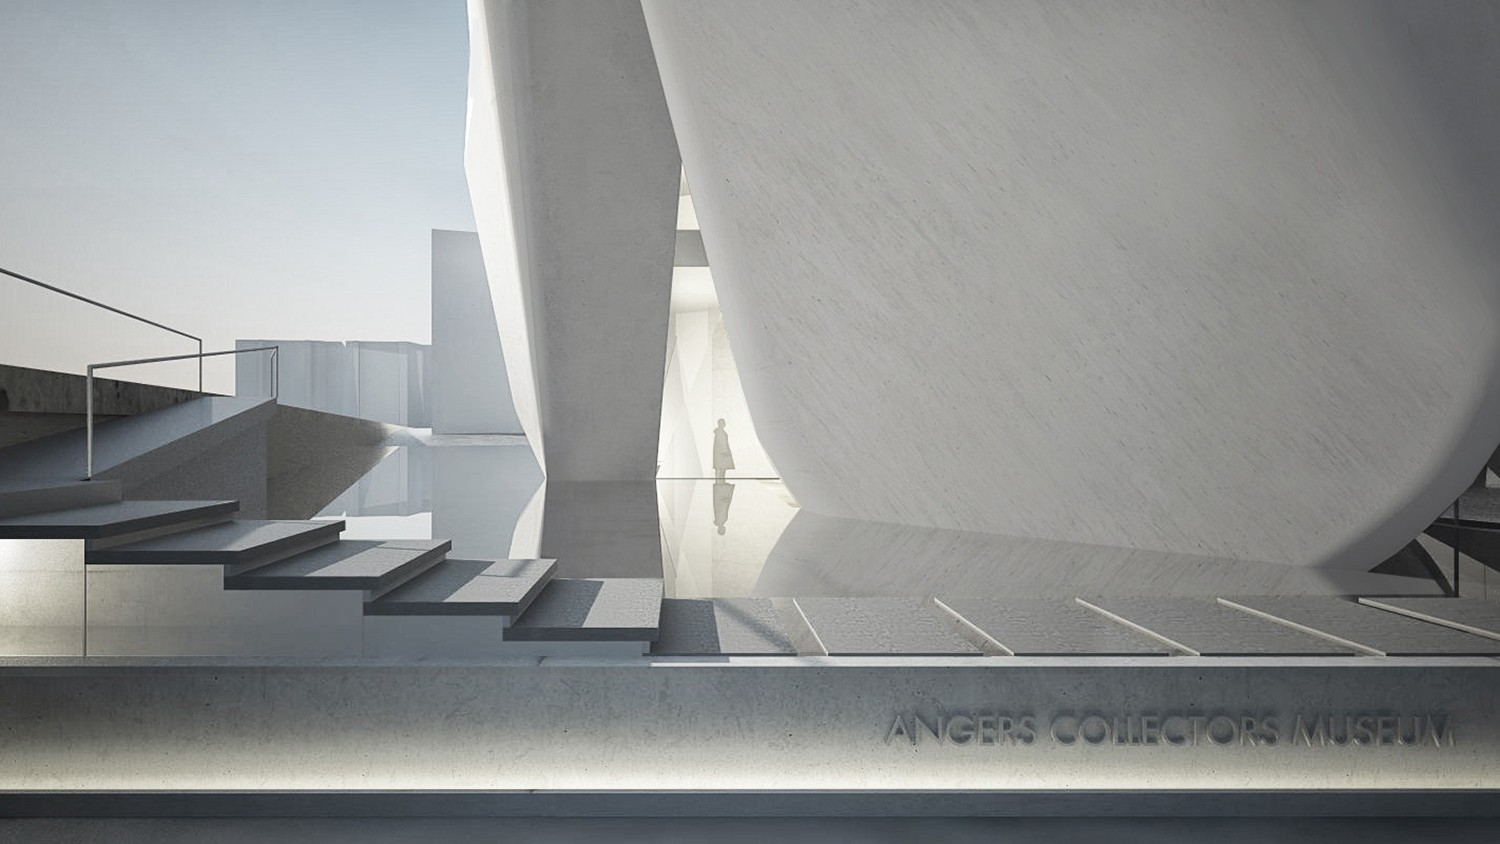 https://s3.us-east-2.amazonaws.com/steven-holl/uploads/projects/project-images/SHA_Angers_MuseumEntrance_WH.jpg